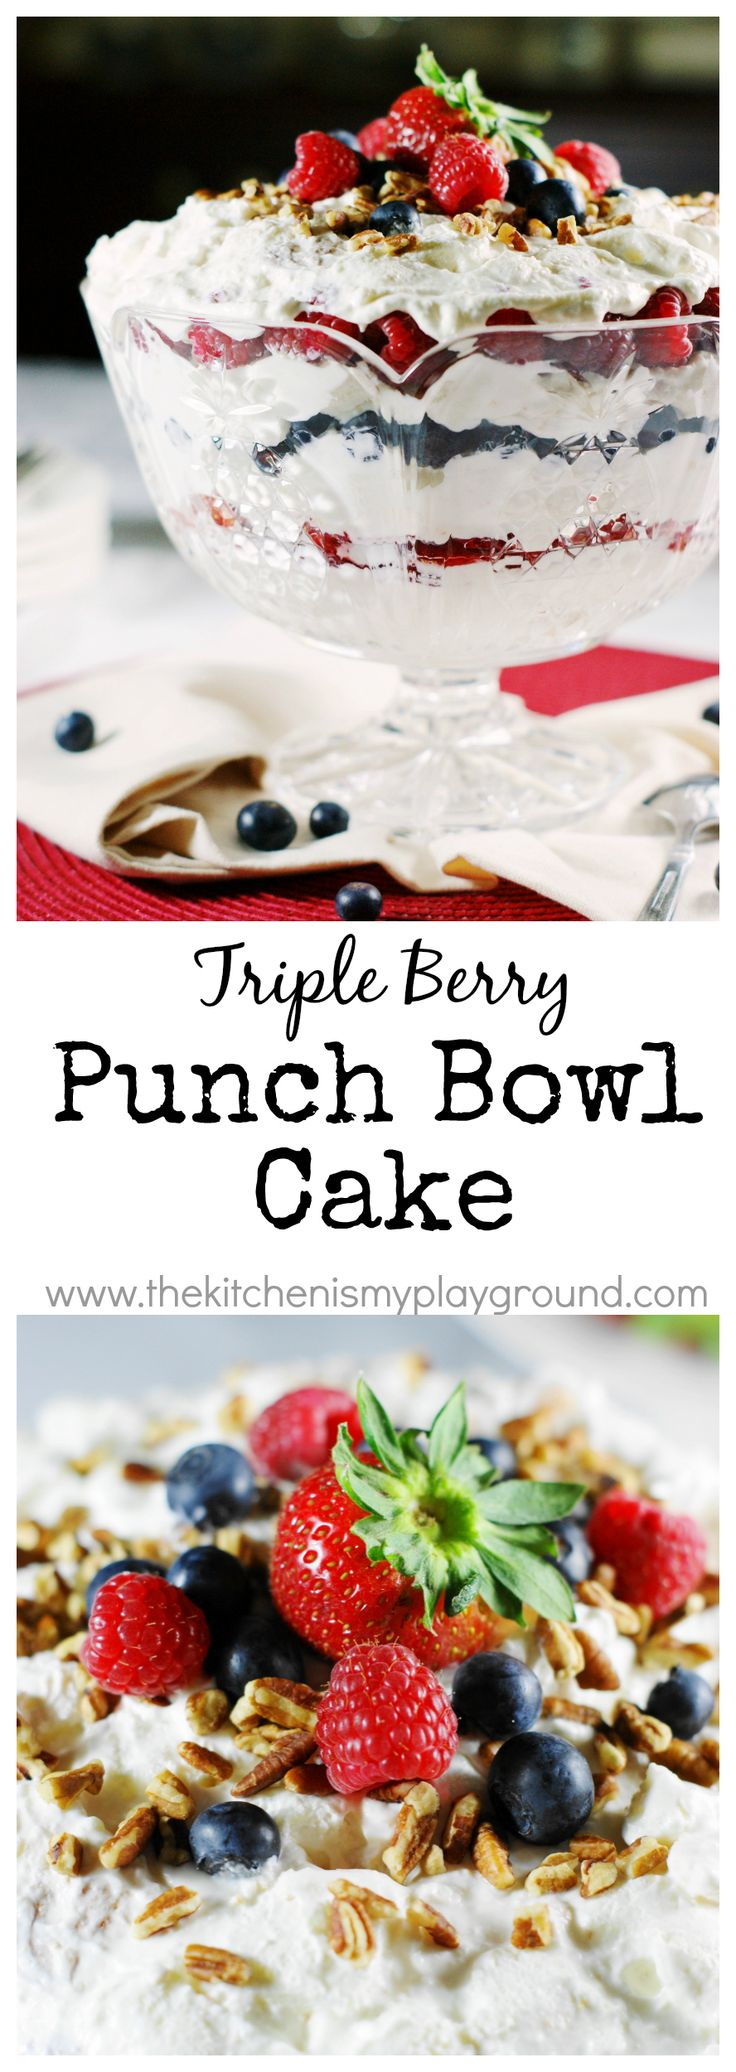 Amazingly delicious {and pretty} Triple Berry Punch Bowl Cake, all decked out in red, white, and blue!   www.thekitchenismyplayground.com